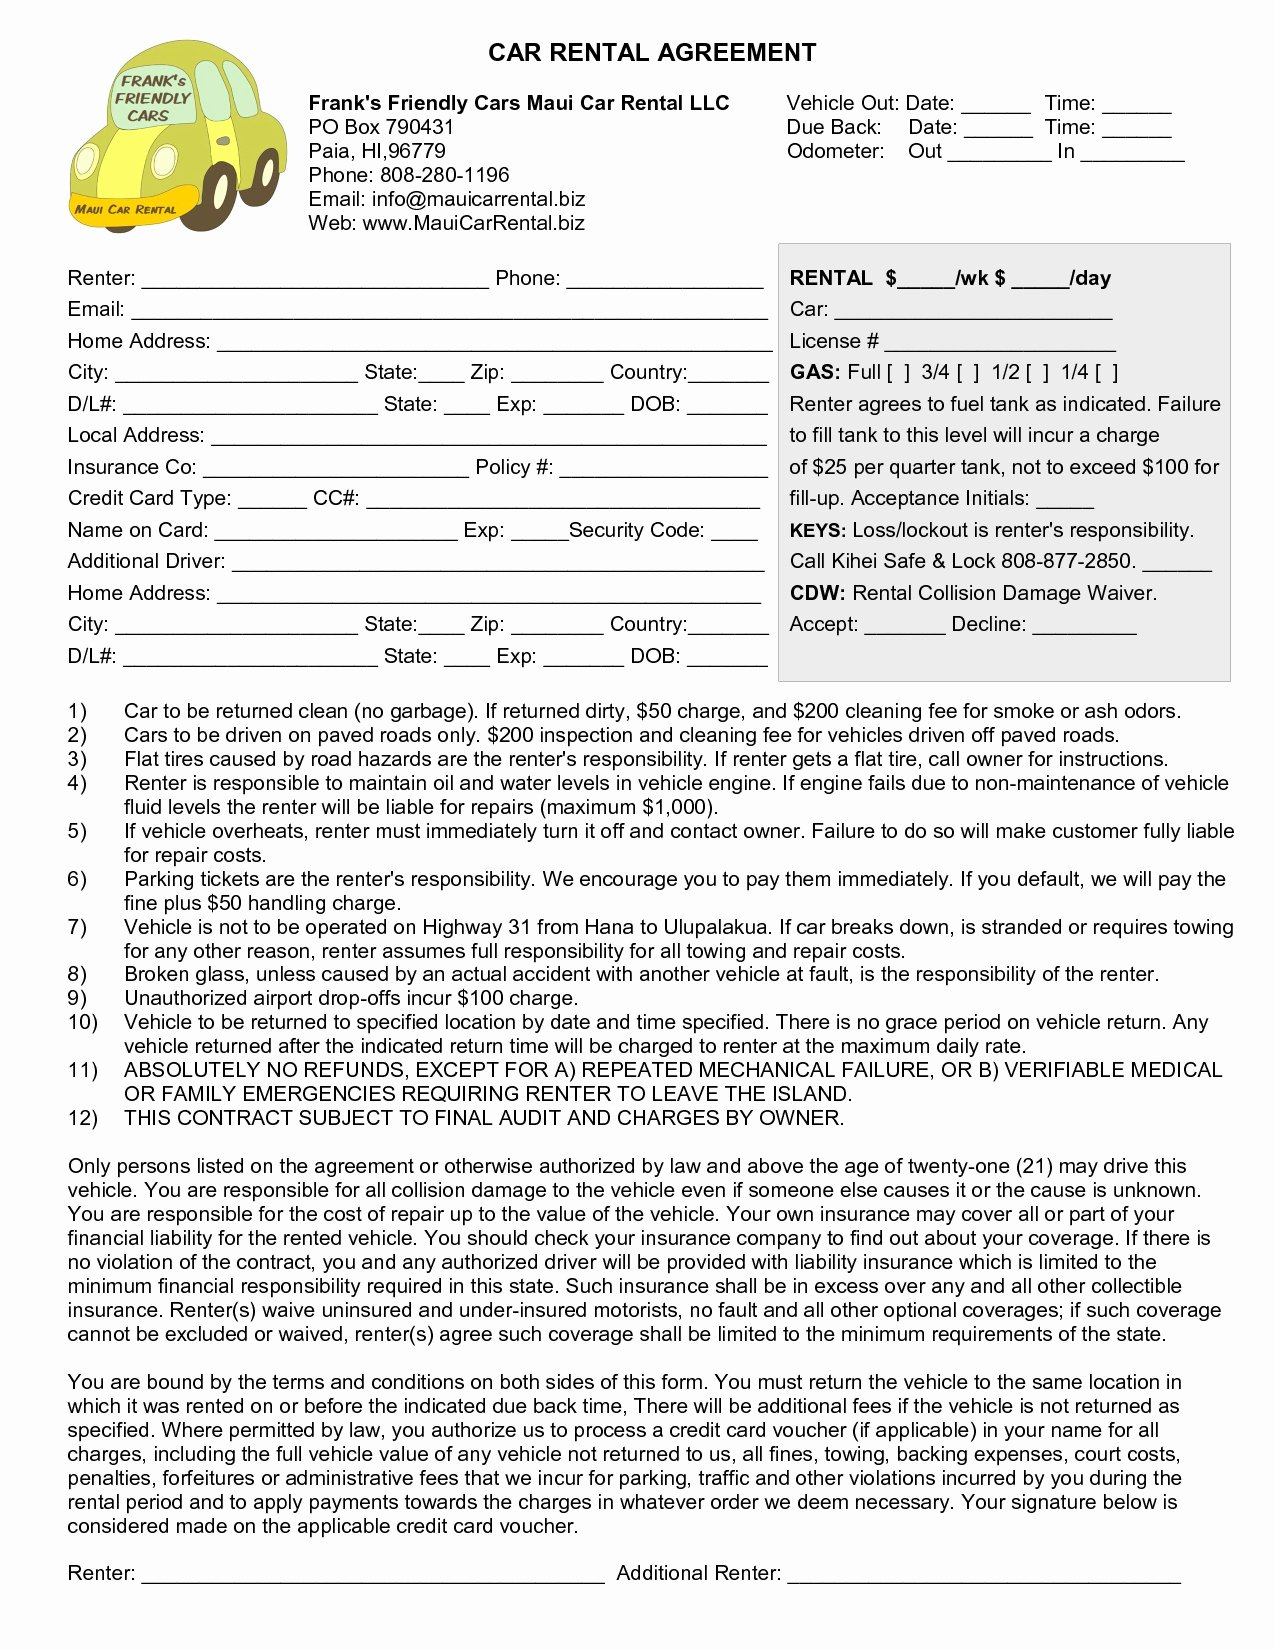 Vehicle Lease Agreement Pdf Lovely Legal Vehicle Rental Agreement Id Opendata